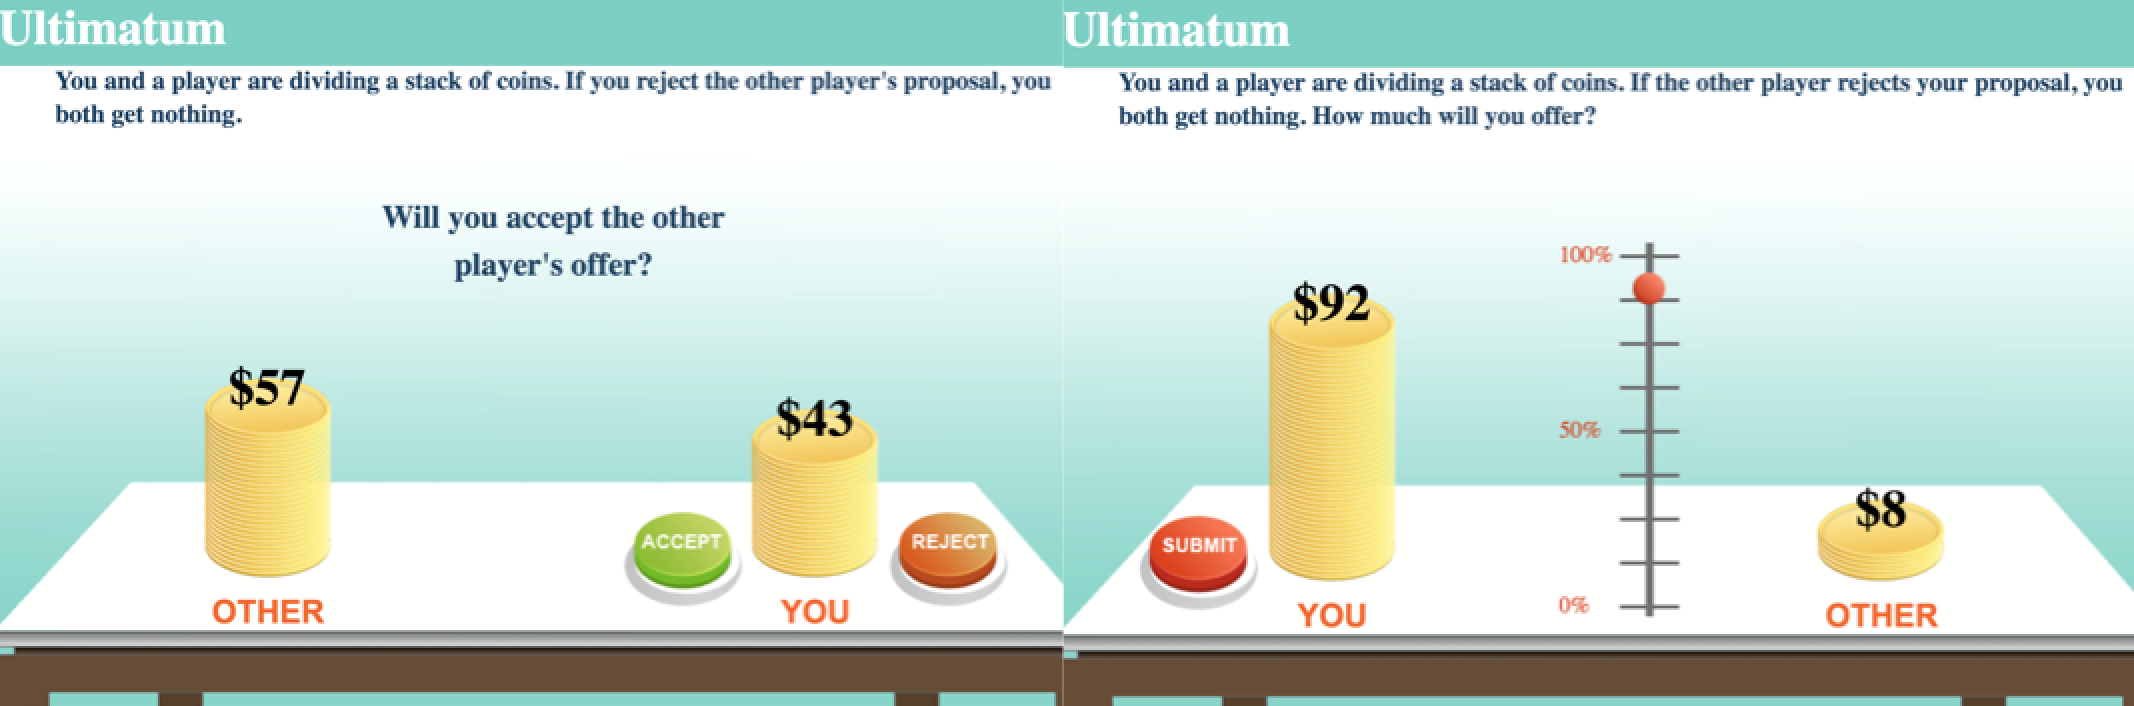 ultimatum game